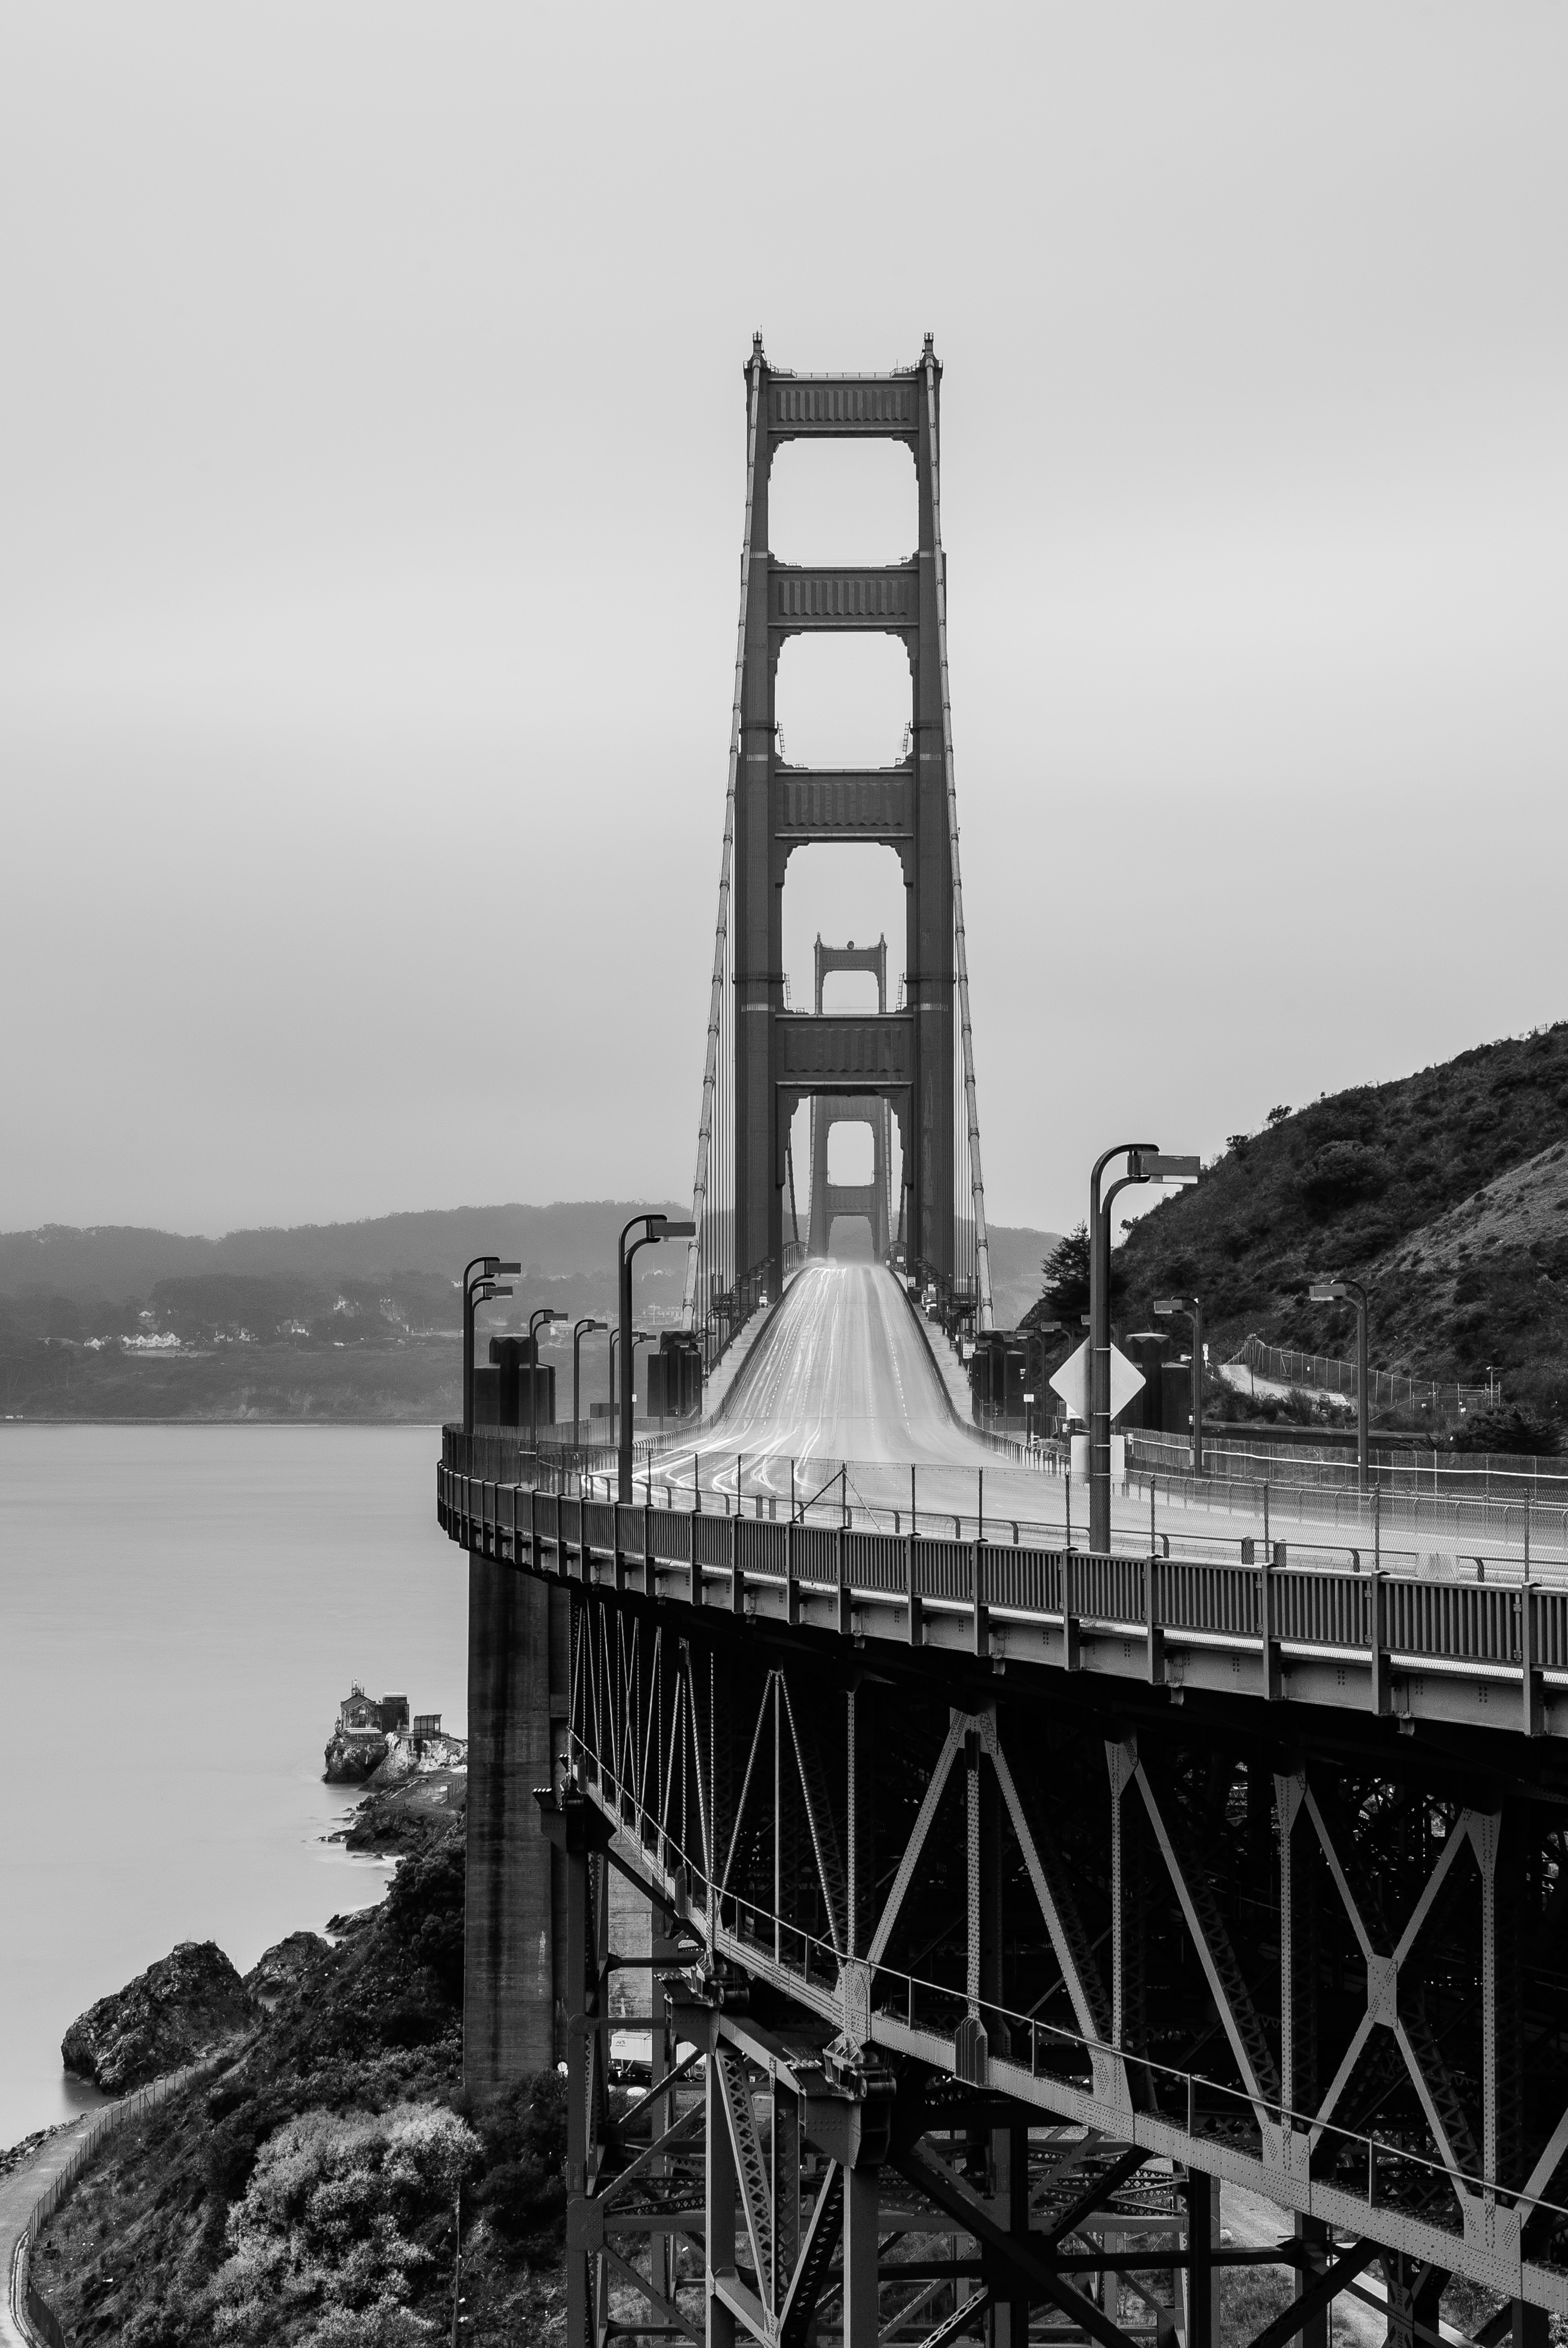 grascale photography of cable bridge